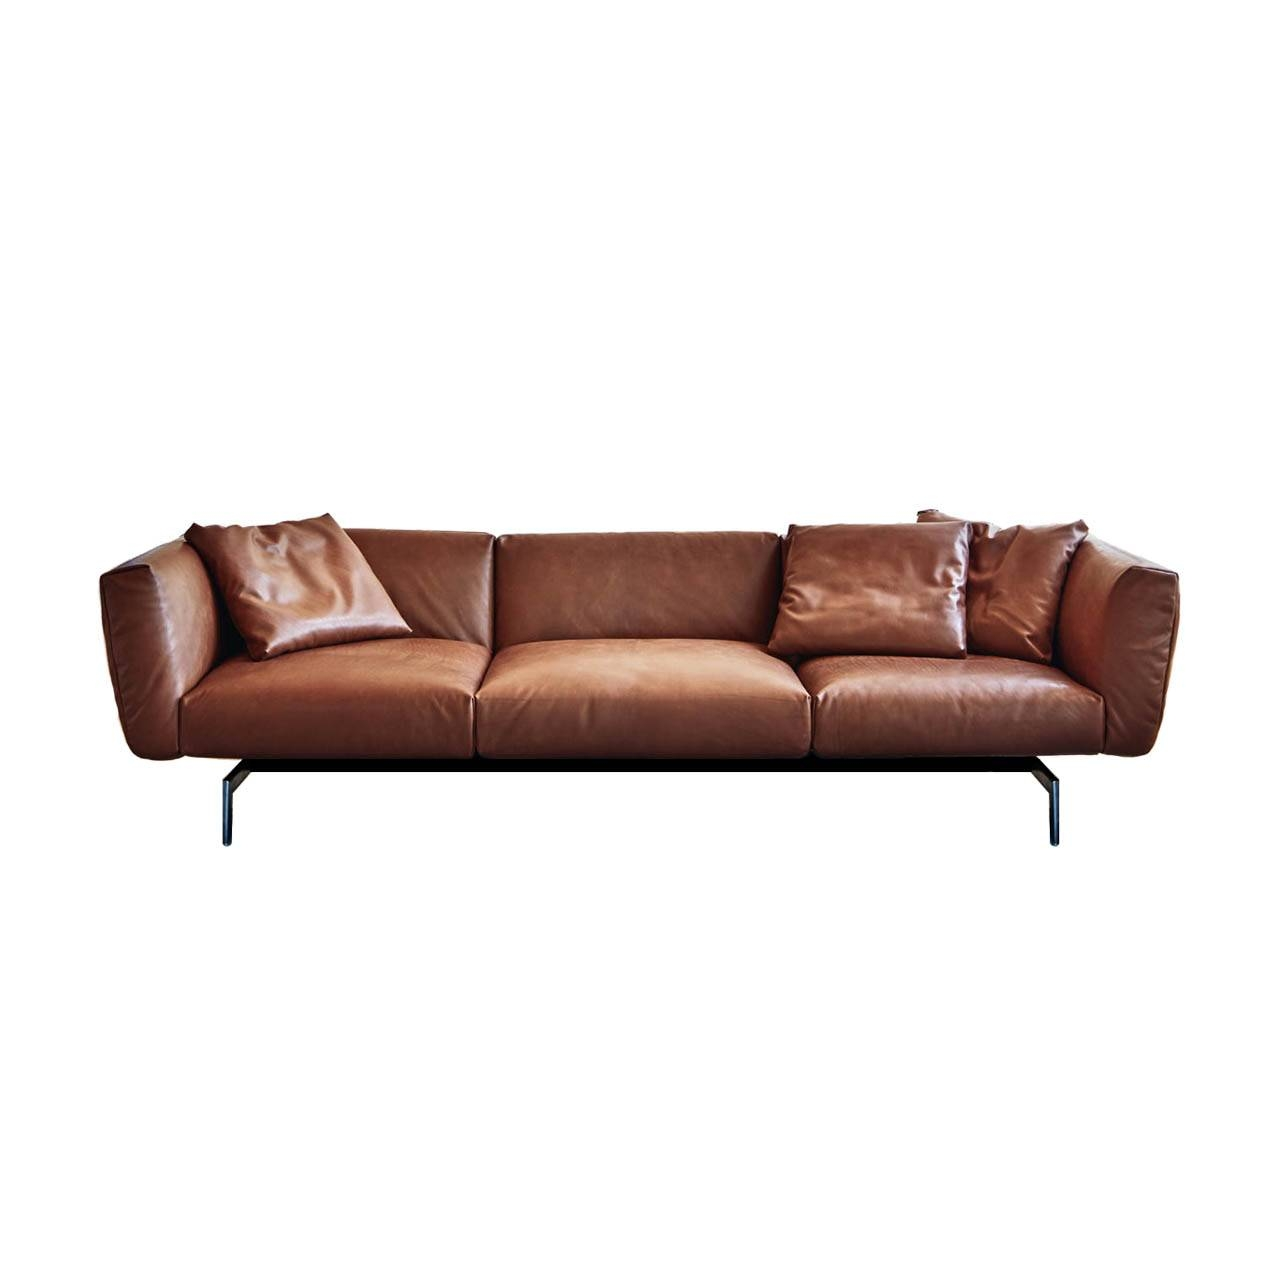 Avio Three Seater Amber Leather Sofa Inside Knoll Sofas (View 15 of 15)